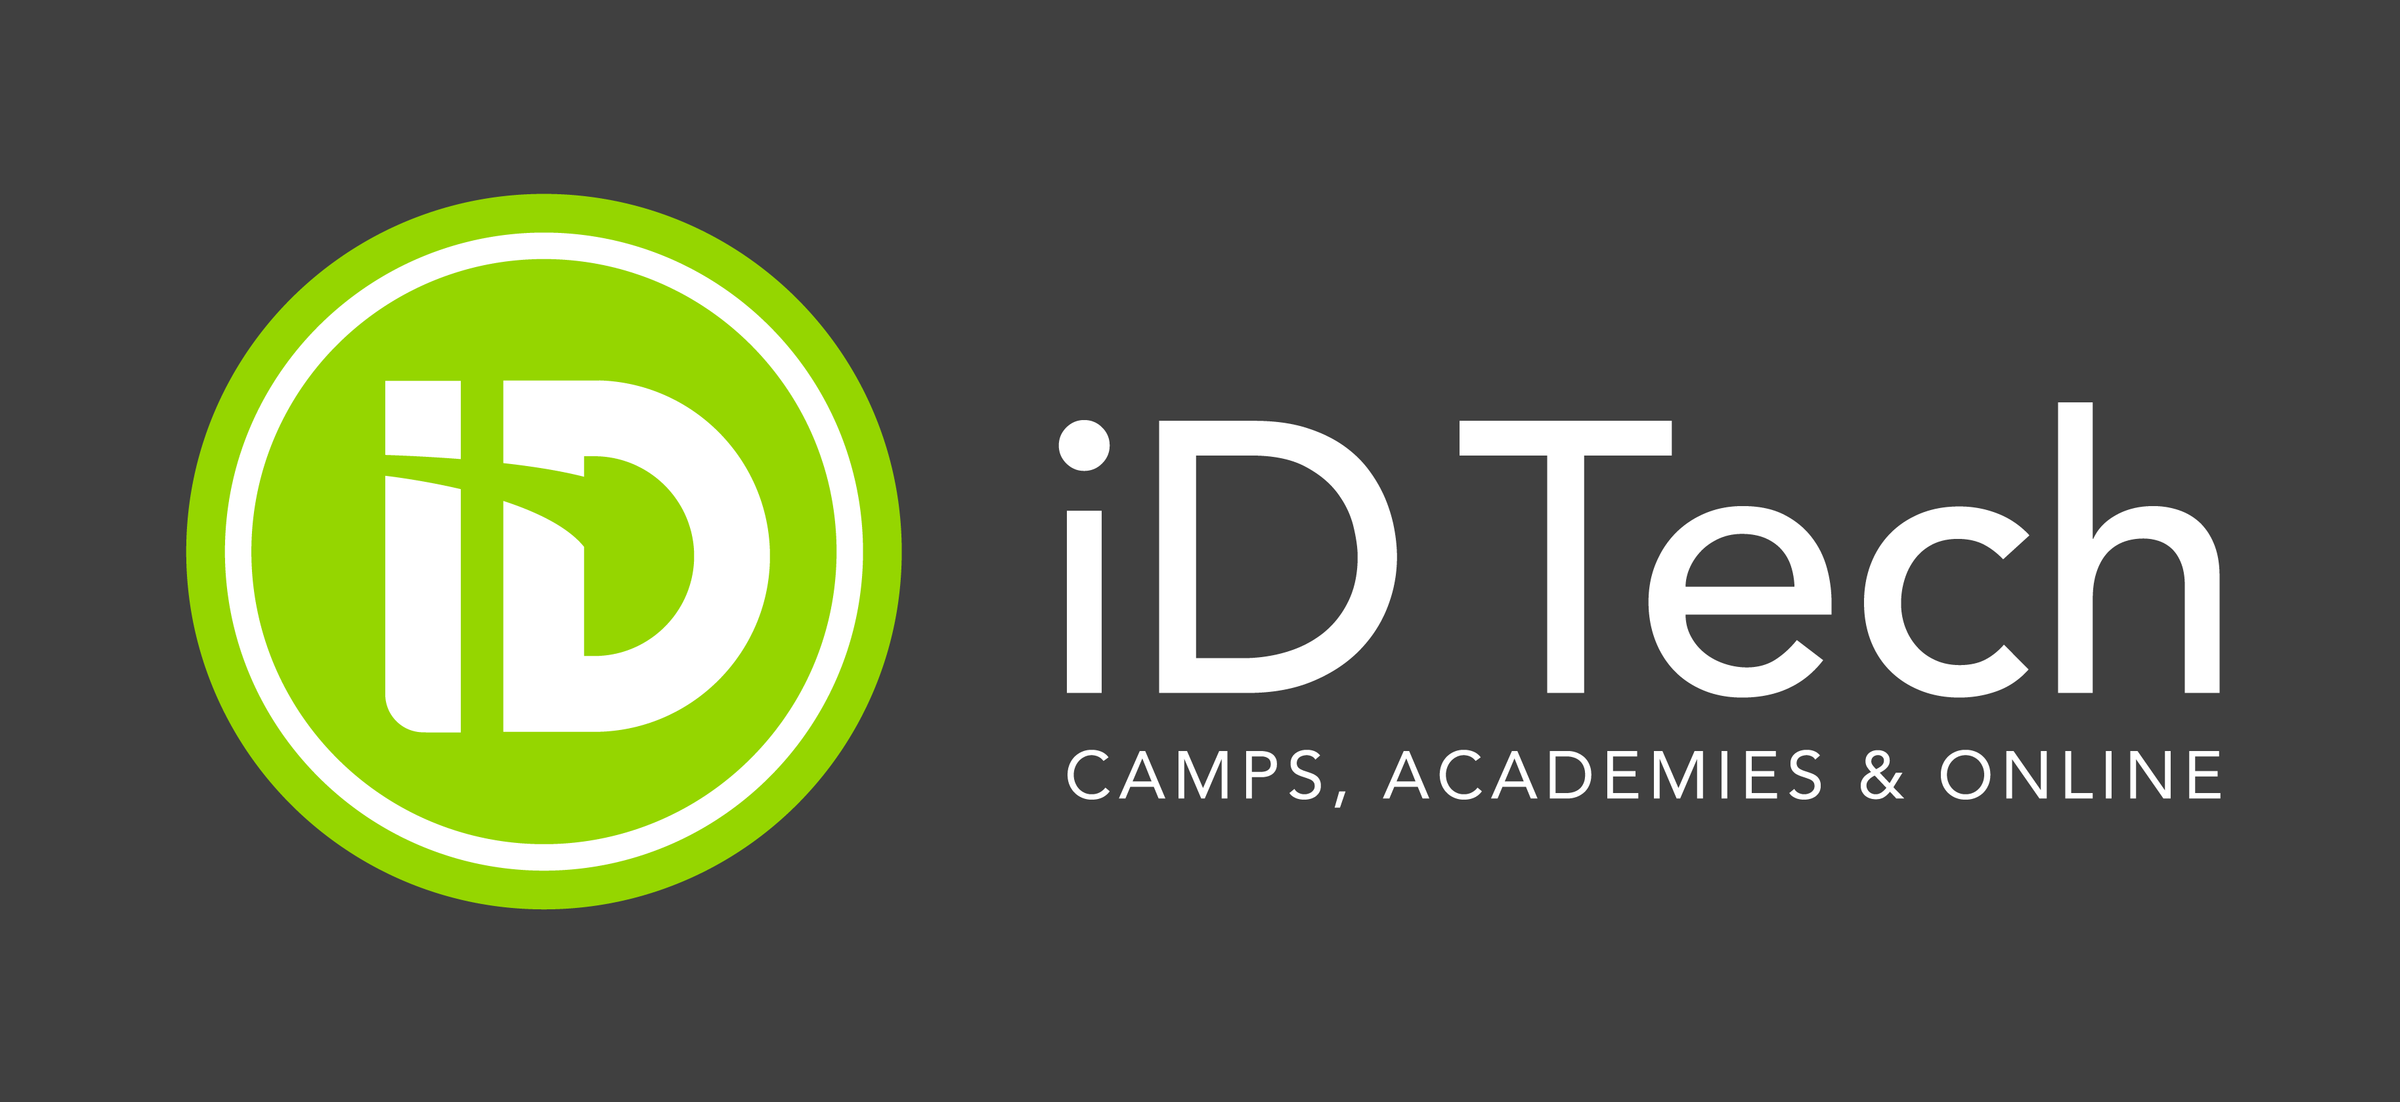 iD Tech Camps: #1 in STEM Education - Held at Sungkyunkwan University